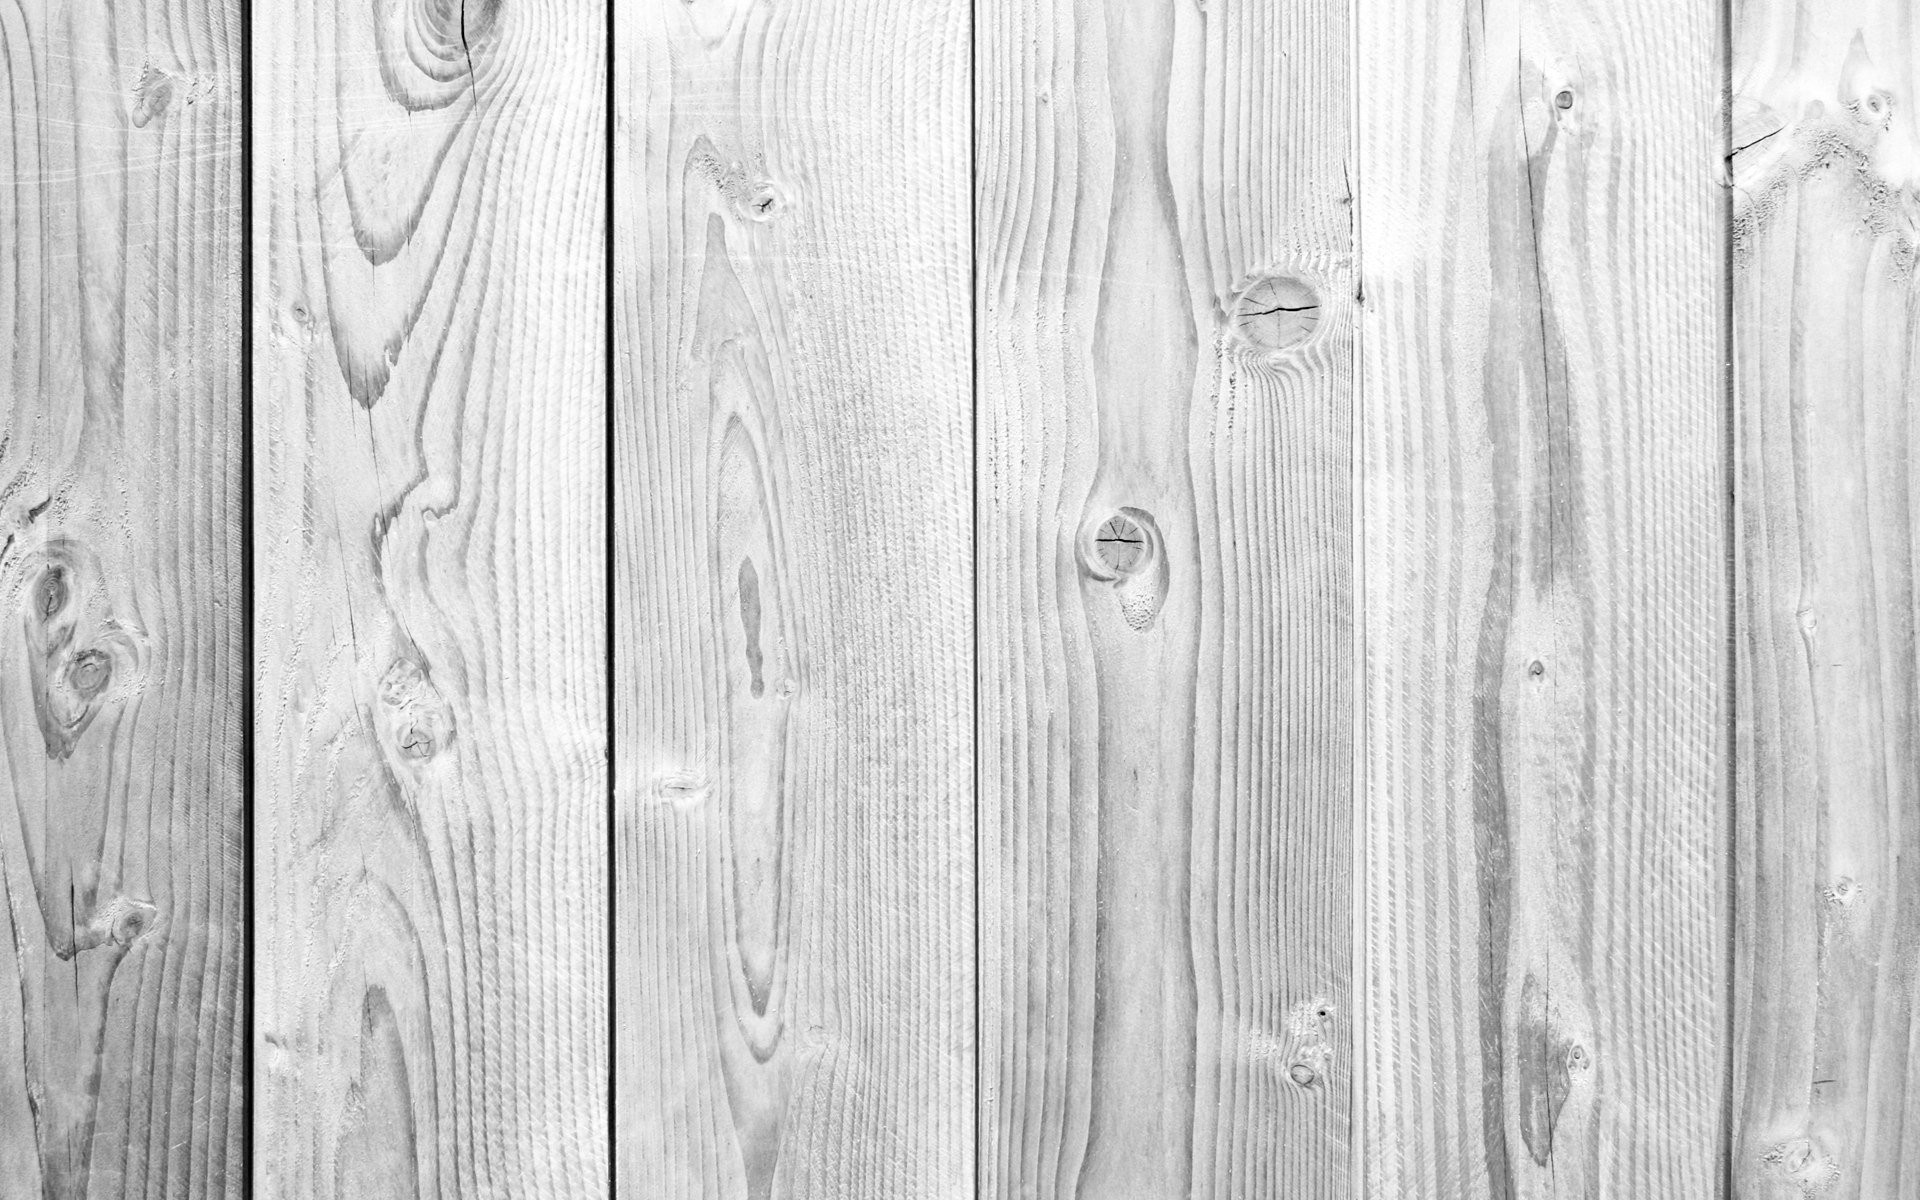 1920x1080 1920x1080 Wallpaper pattern, background, surface, wood